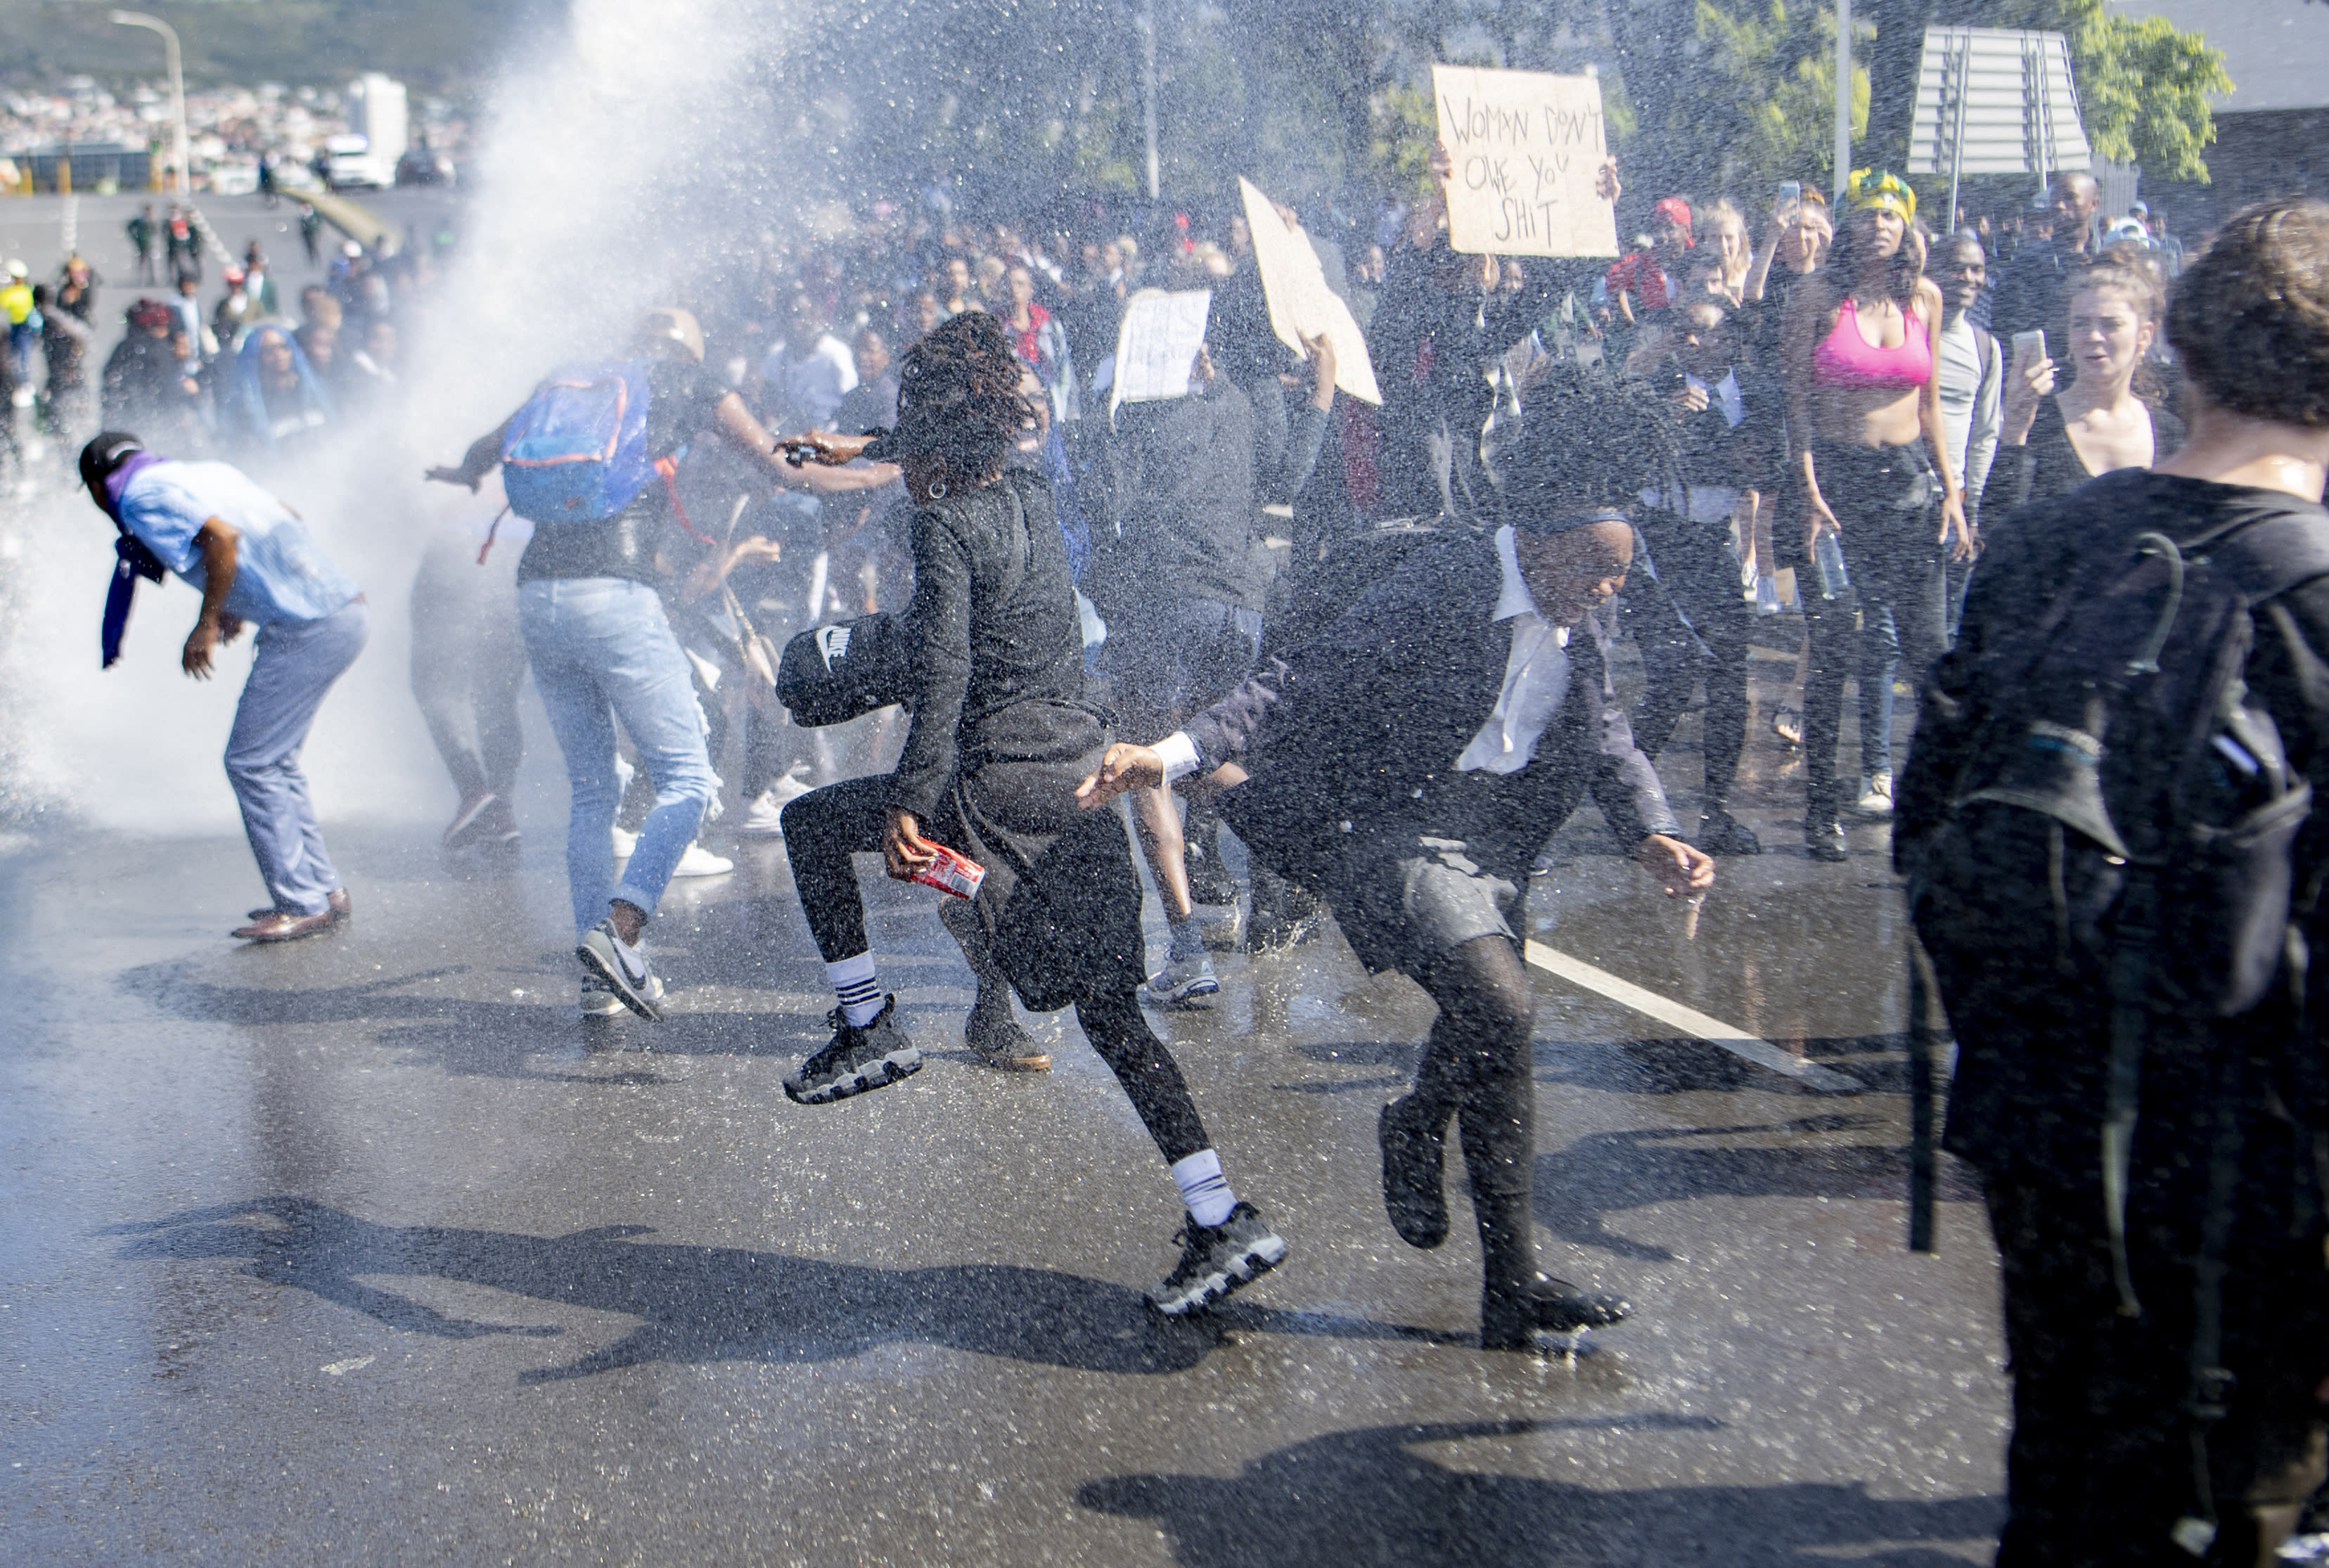 A water cannon is used to disperse demonstrators who were blocking a busy intersection in near to where the World Economic Forum on Africa is being held in Cape Town, South Africa, Wednesday, Sept. 4, 2019. The protesters are demanding that the government crack down on gender-based violence, following a week of brutal murders of young South African women that has shaken the nation. (AP Photo)